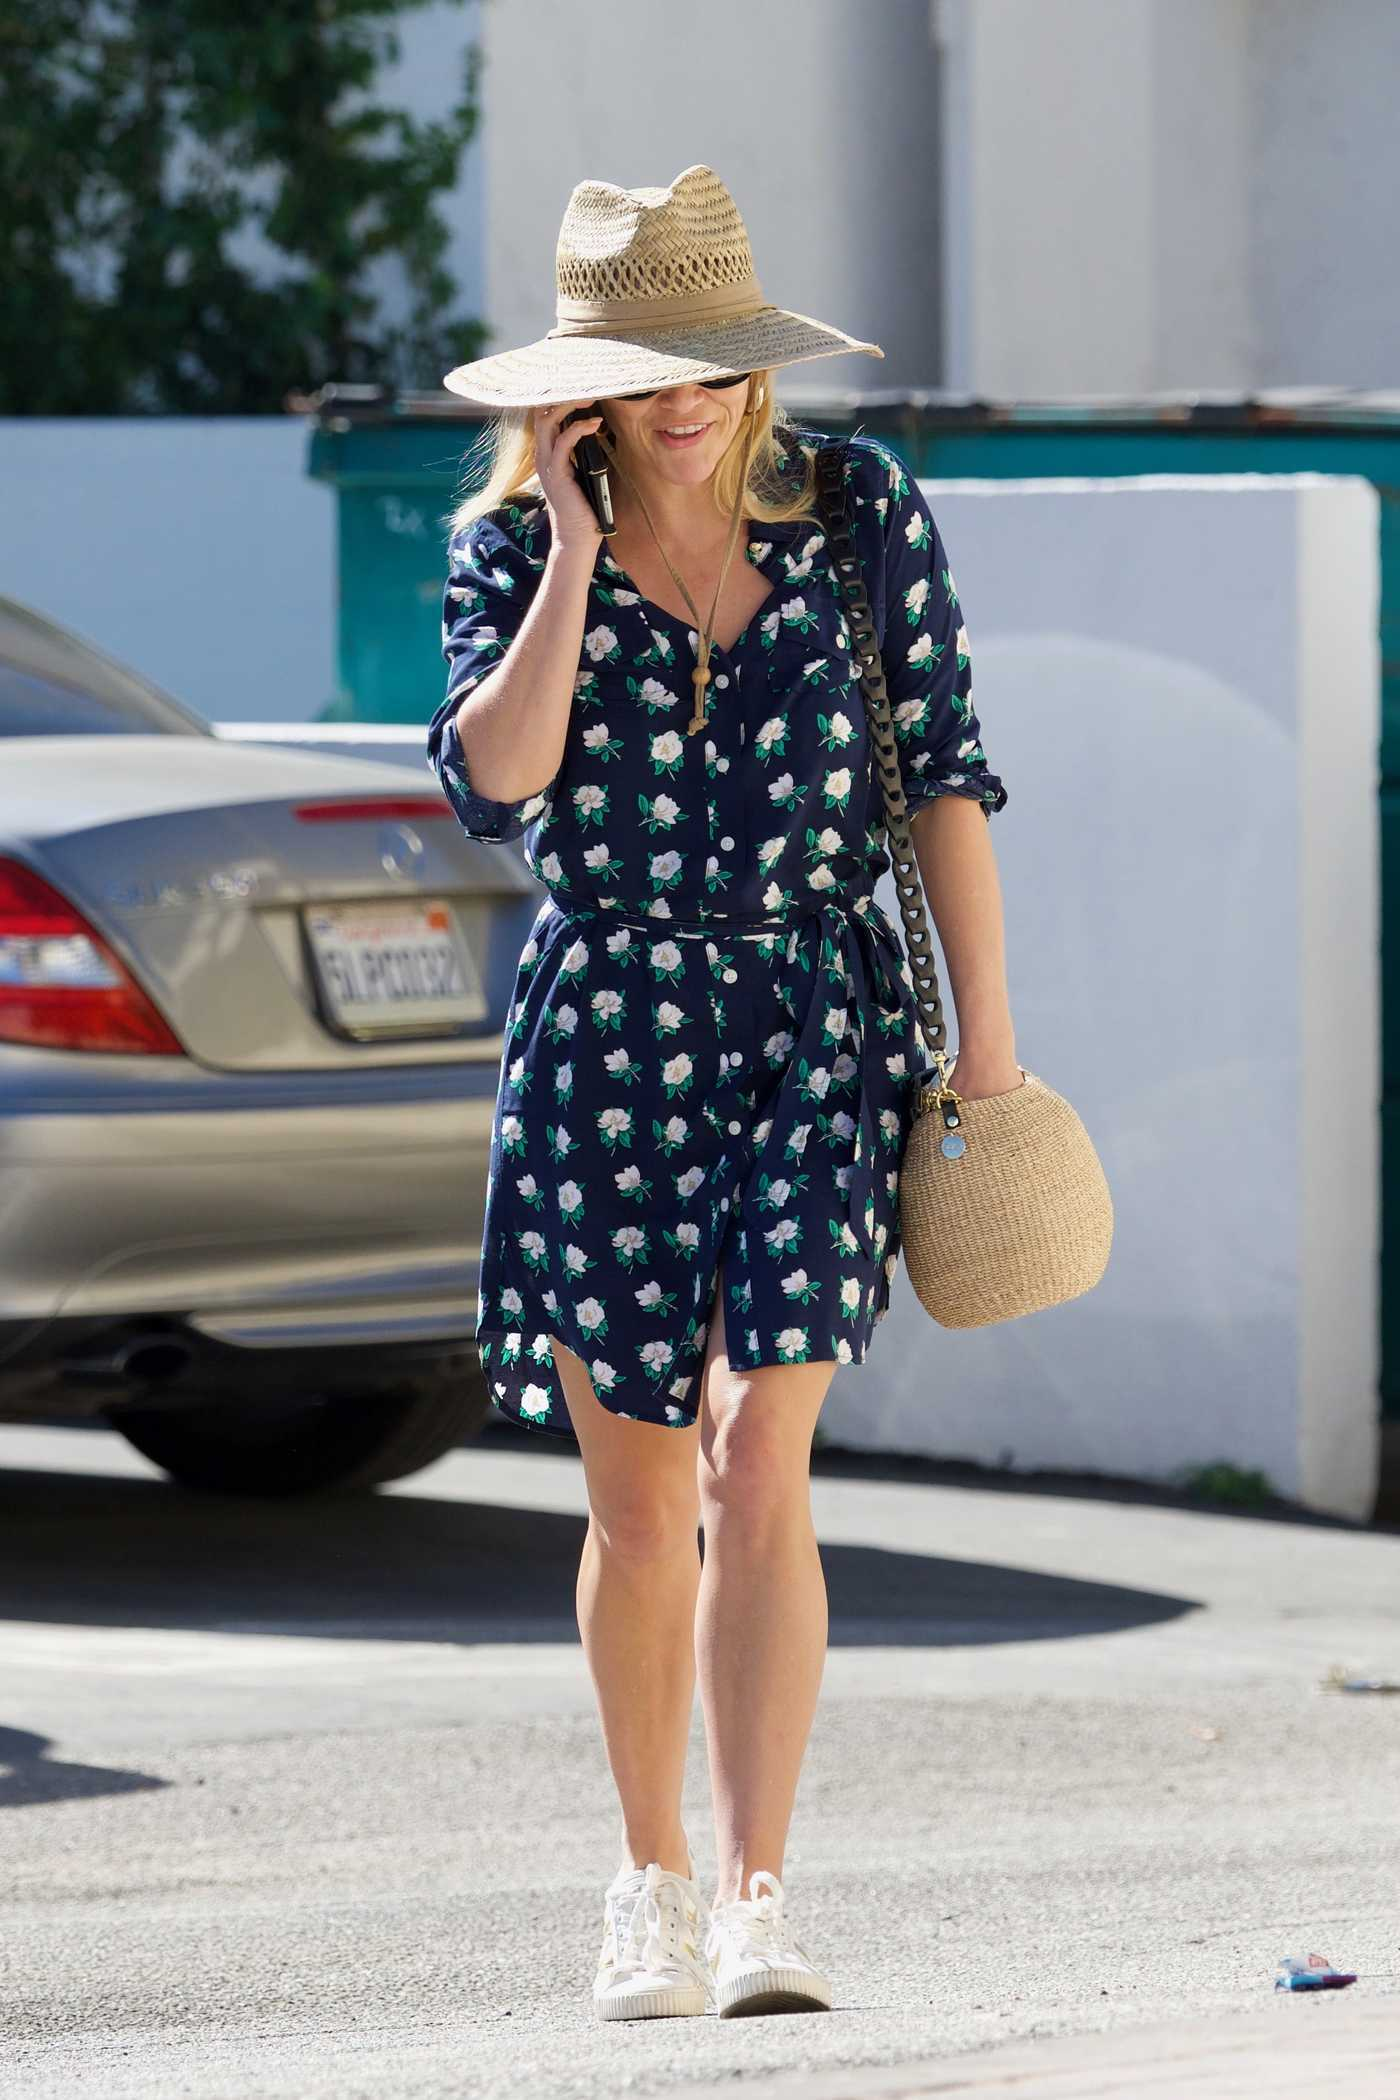 Reese Witherspoon in a Floral Dress Was Seen Out in Los Angeles 10/20/2018